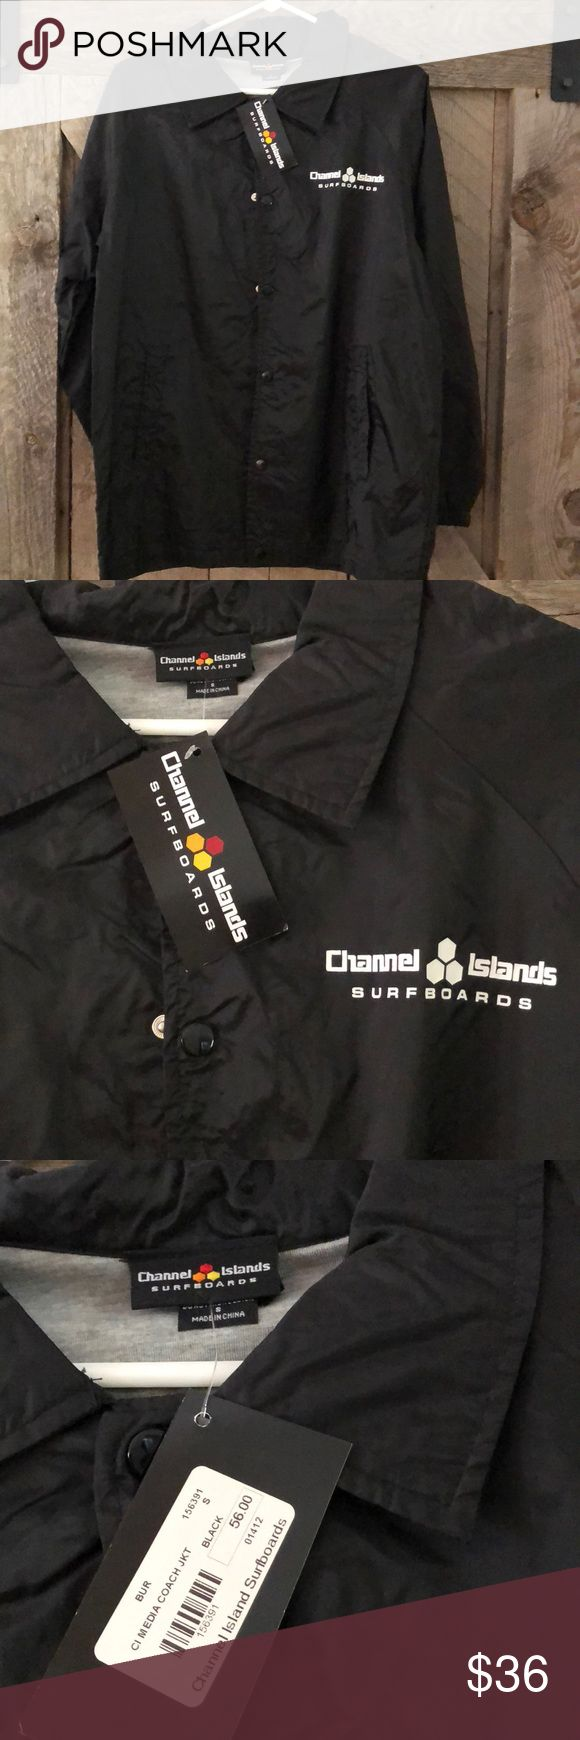 Channel Islands surf jacket black with grey sweat interior. new with tags channel island surfboards Jackets & Coats Windbreakers